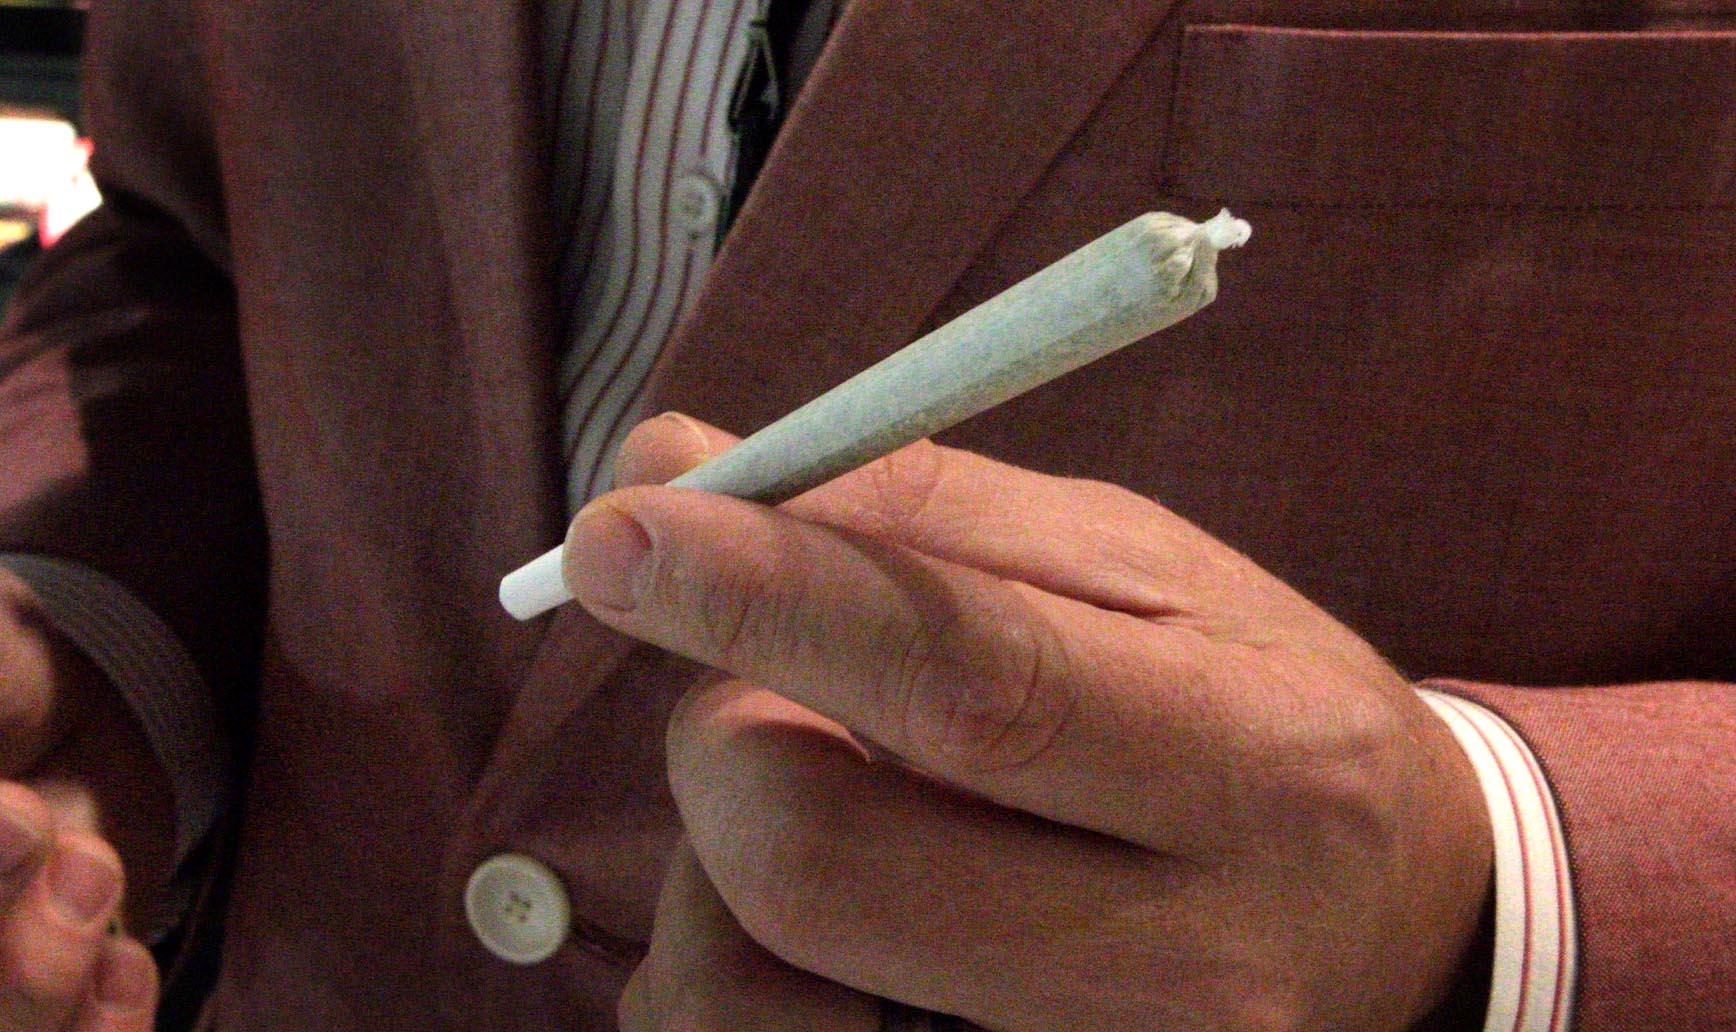 A machine-rolled joint at Native Roots Dispensary in downtown Denver. (Dean Russell/Here & Now)